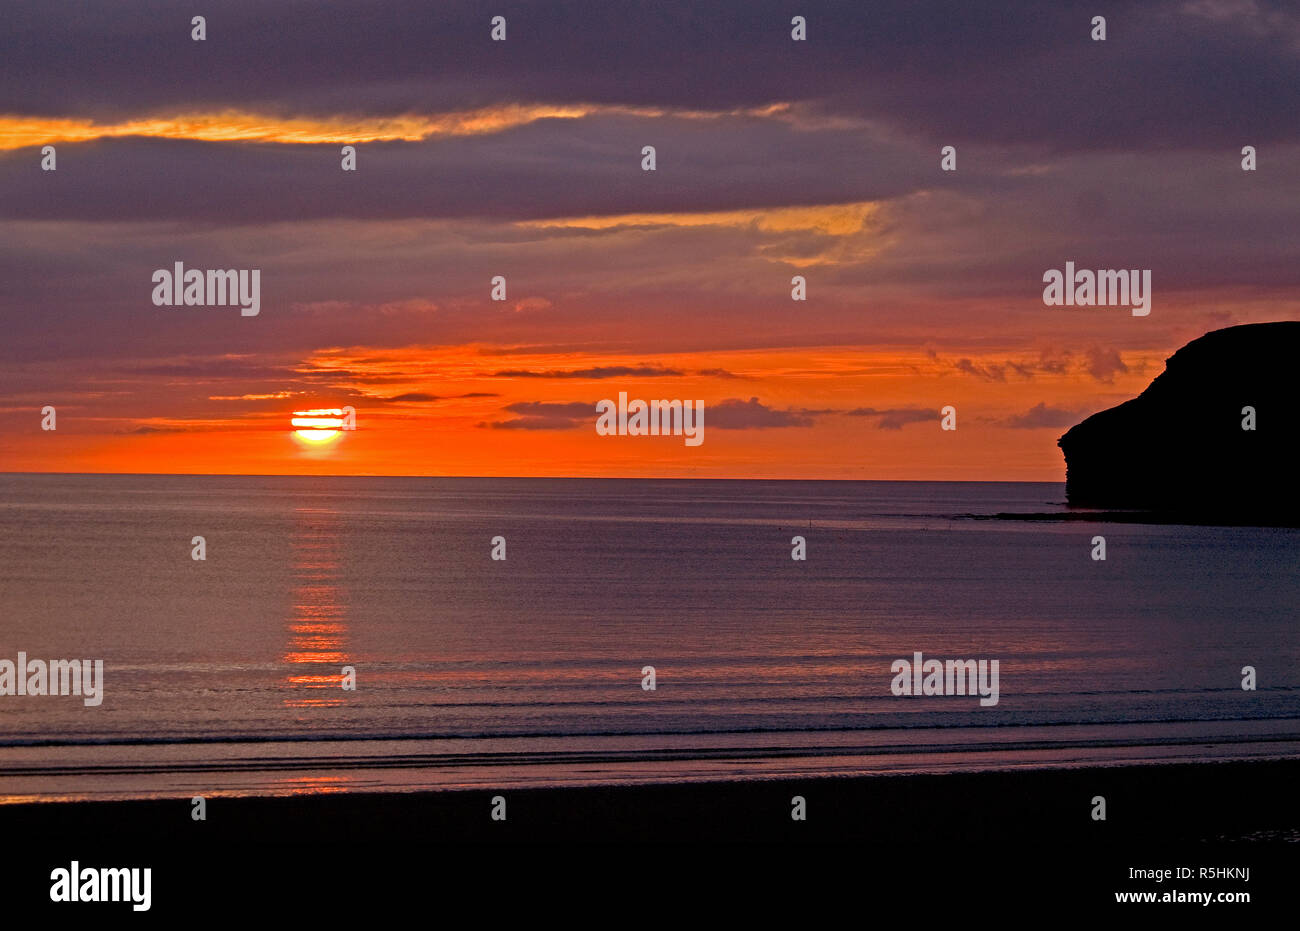 Early morning sunrise over the North Sea at Caithness in Scotland. Stock Photo